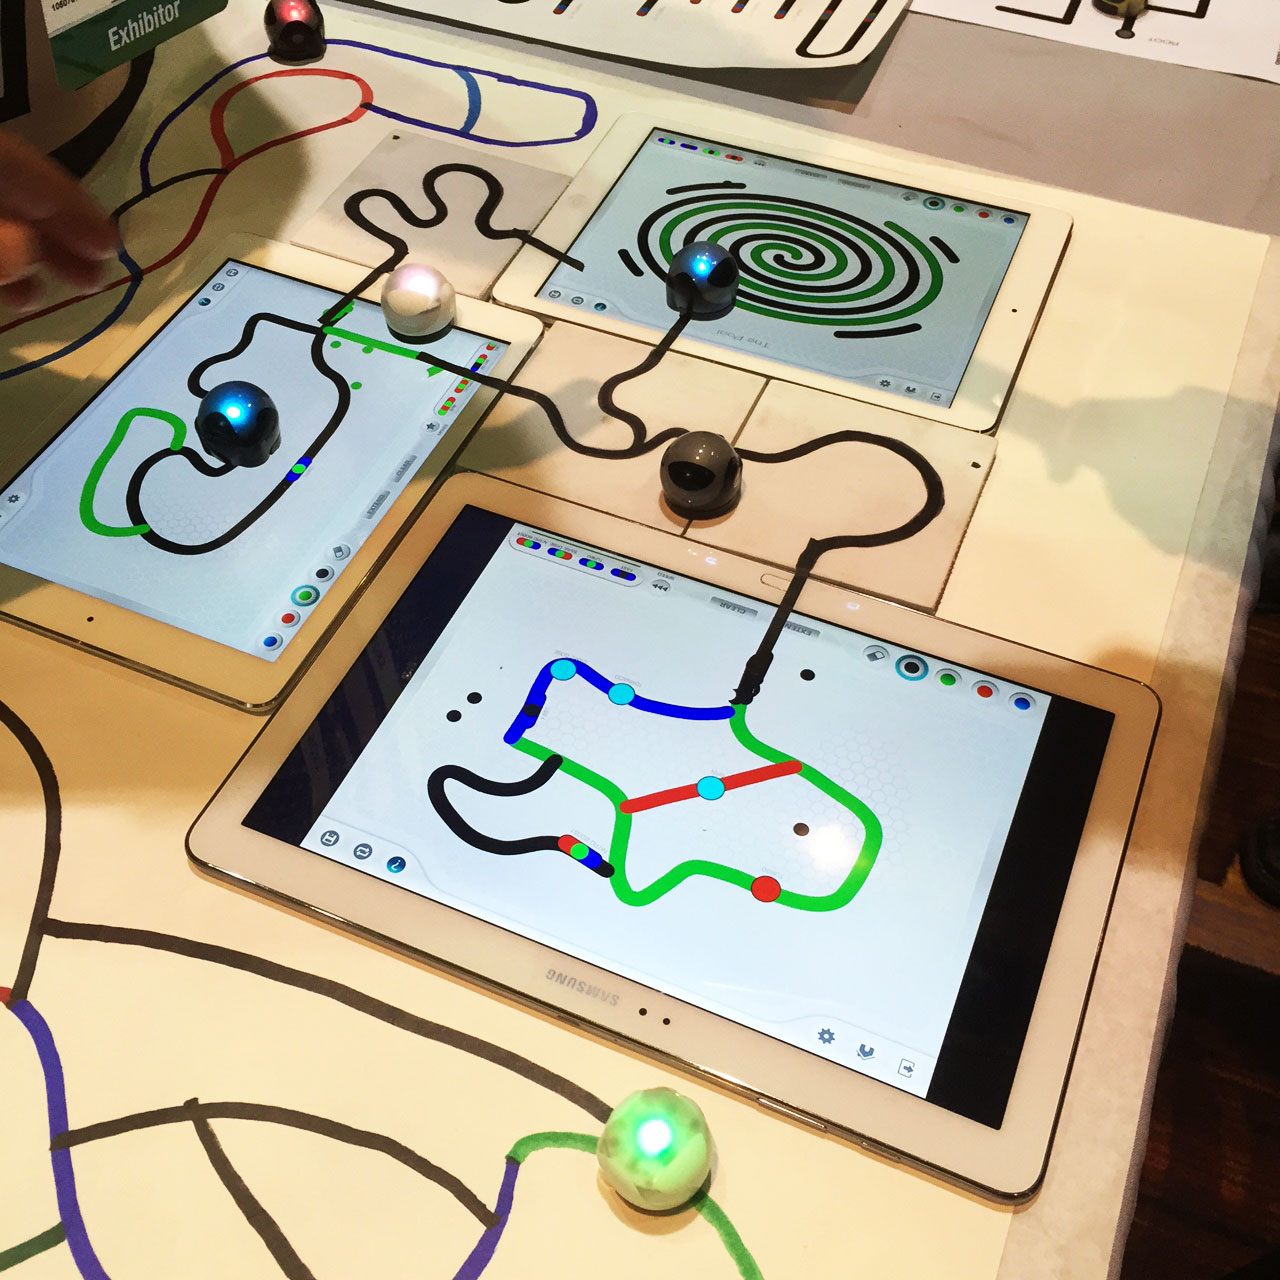 CES 2015 - Ozobot Bit Is a 1-Inch Programmable Robot that Can Sense Colored Lines